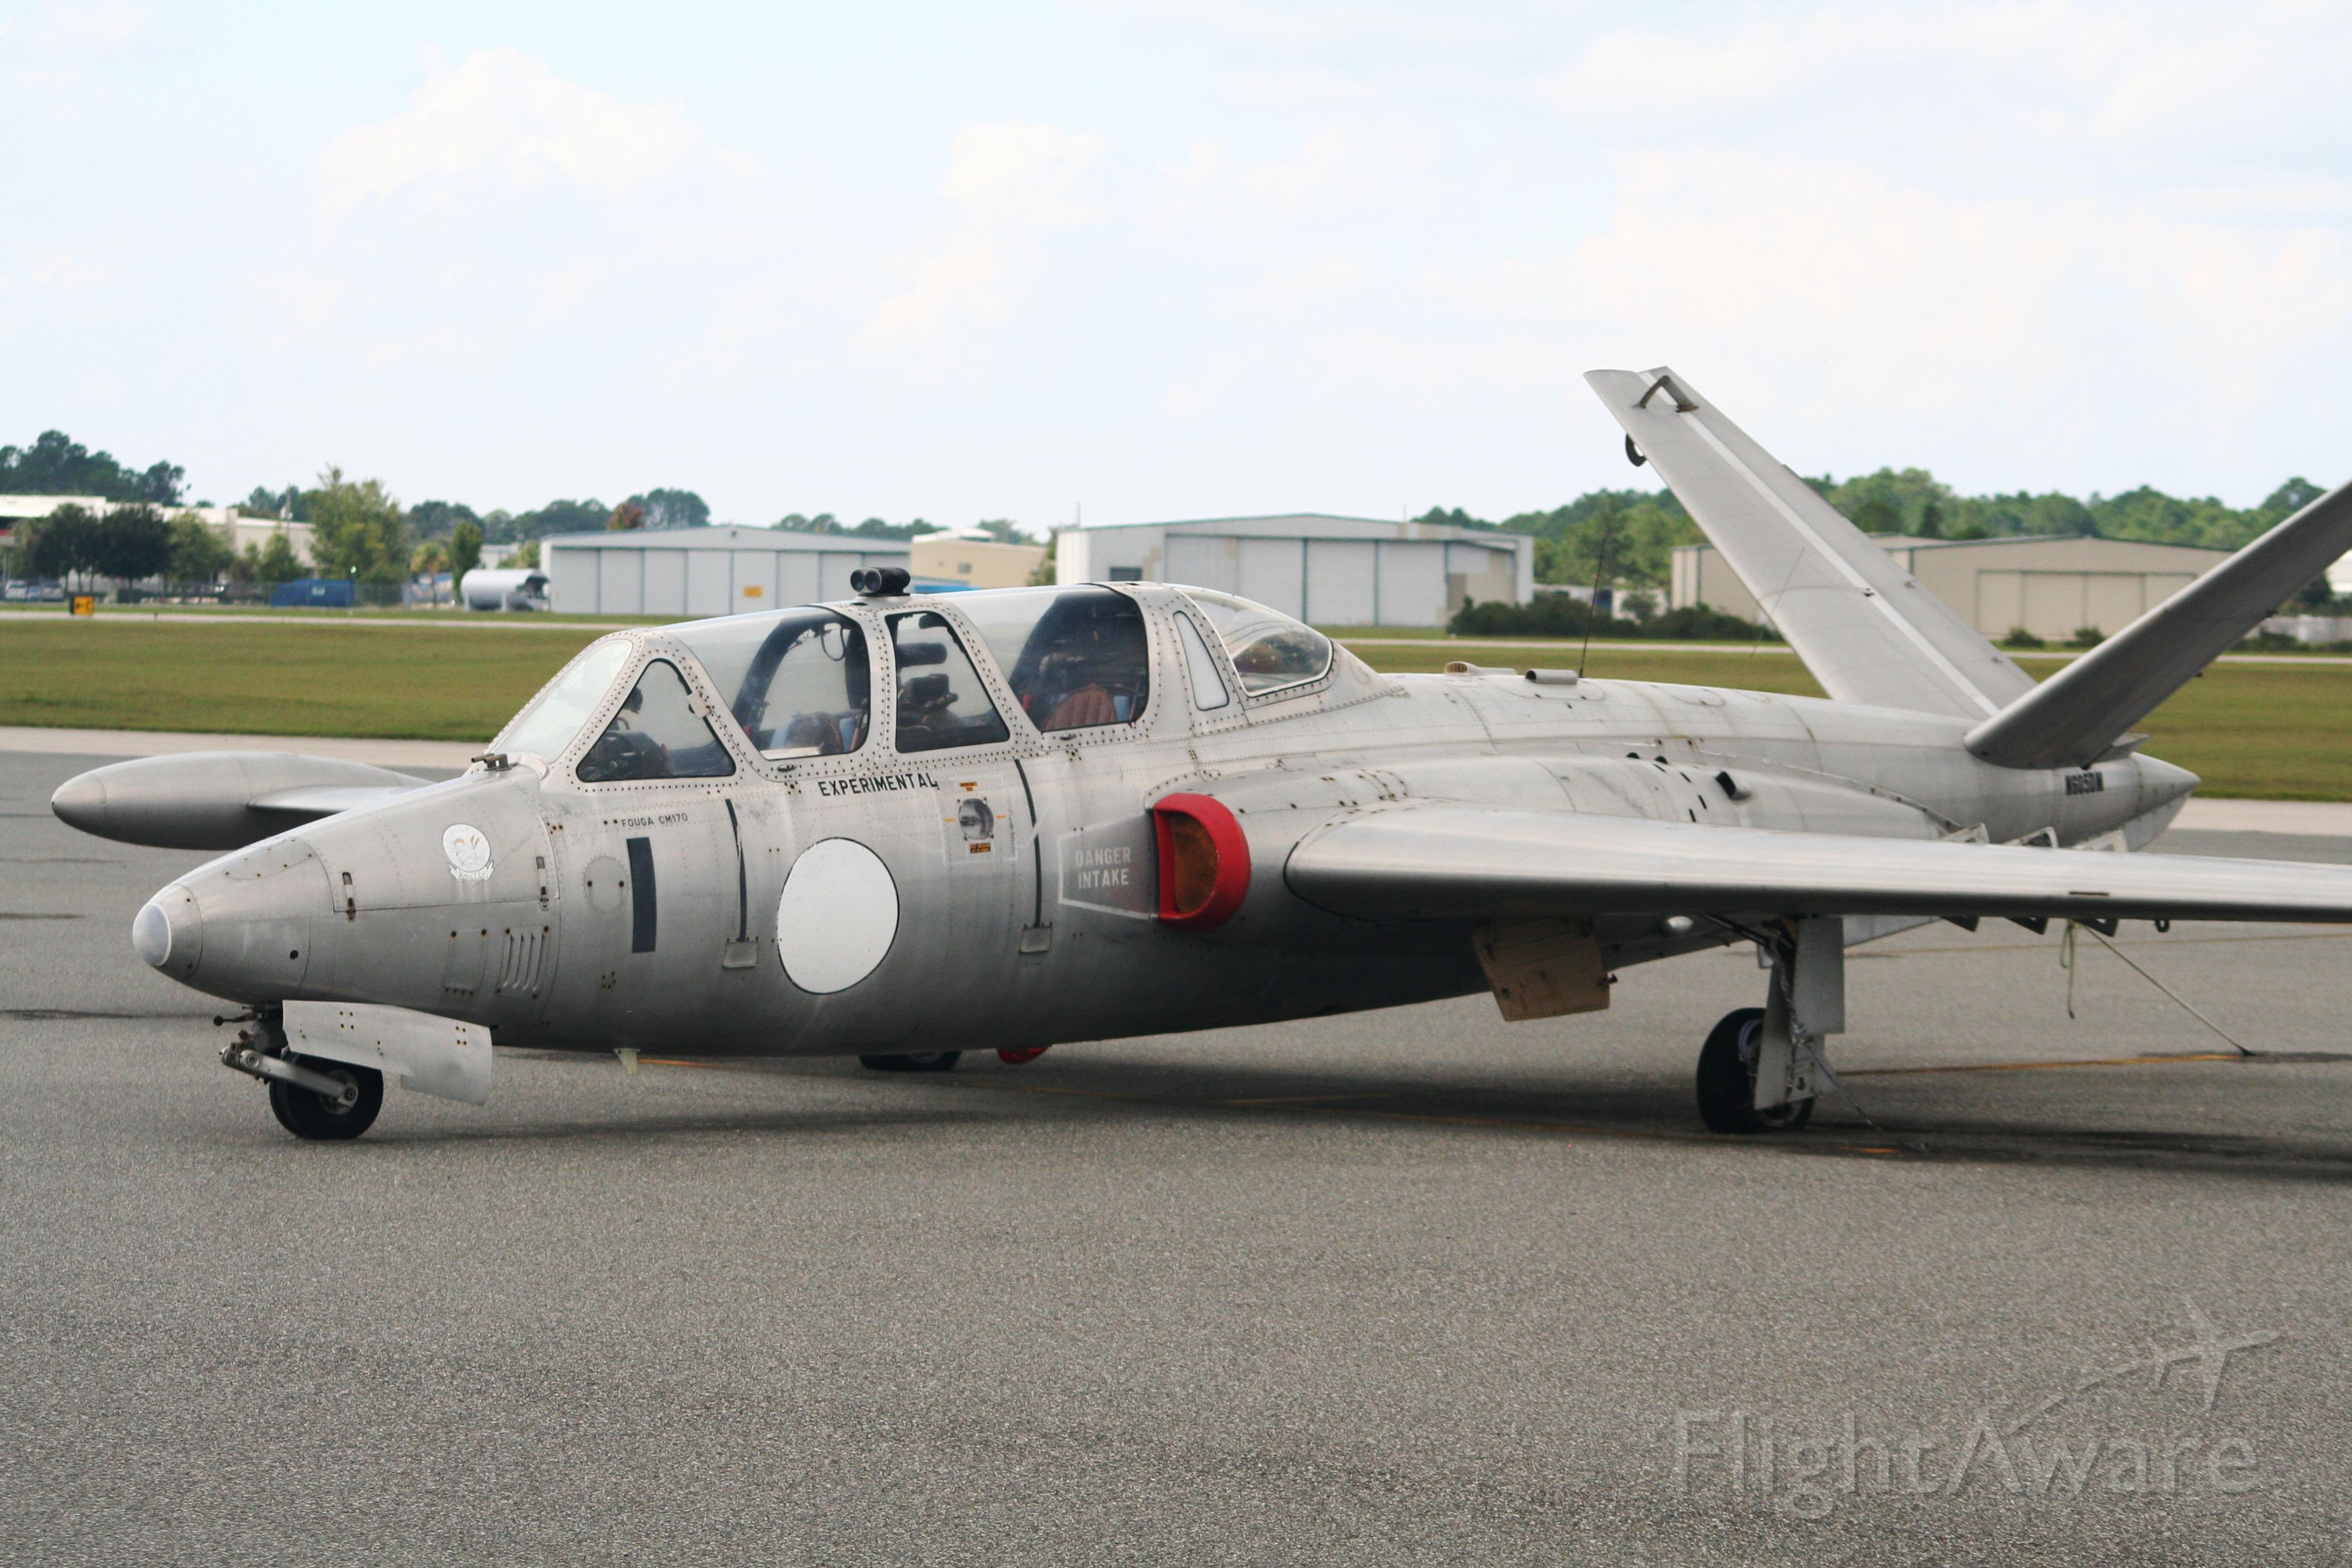 """N6050N — - Fouga CM170 parked on the deck at Deland Florida.  Doesnt look like it has been moved in years but it is still cool to look at!  Flightaware calls it a Valmet Magister but this one has a tag on it that states that it is a Fouga CM170.  Designed in 1948 as a French Jet Trainer it was later exported to Germany, Israel, Finland, Belgium, Katanga, Ireland and Brazil.  Take a look at Wikipedia under """"Fouga Magister"""", this is a very interesting aircraft."""